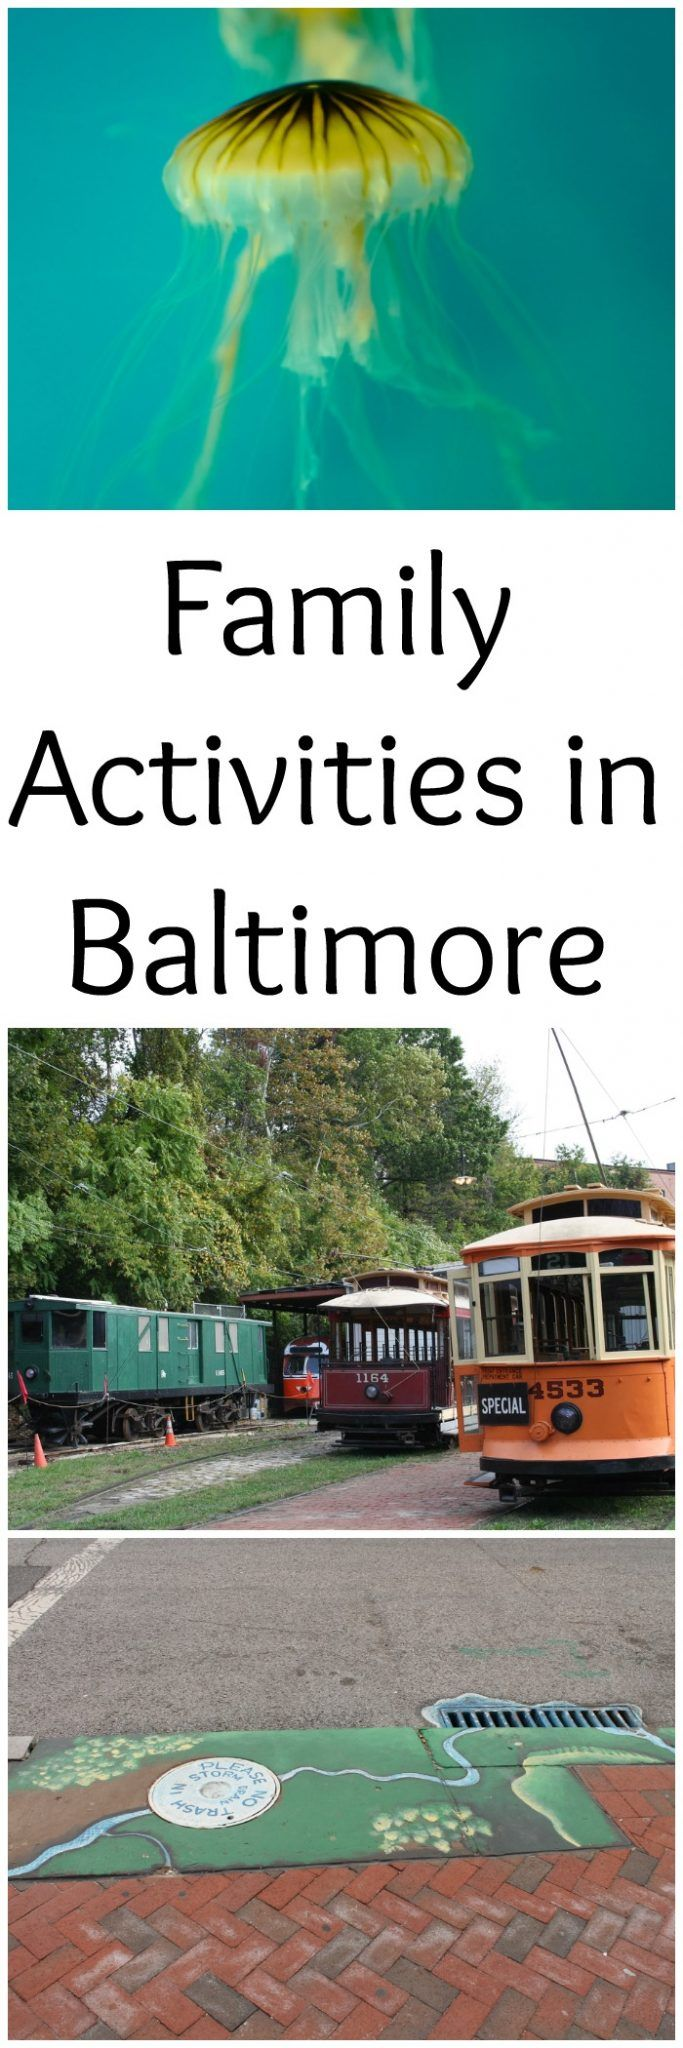 Looking for some family activities in Baltimore? Baltimore has so many fun things to do that. Here is a list of 16 things that the family will love.